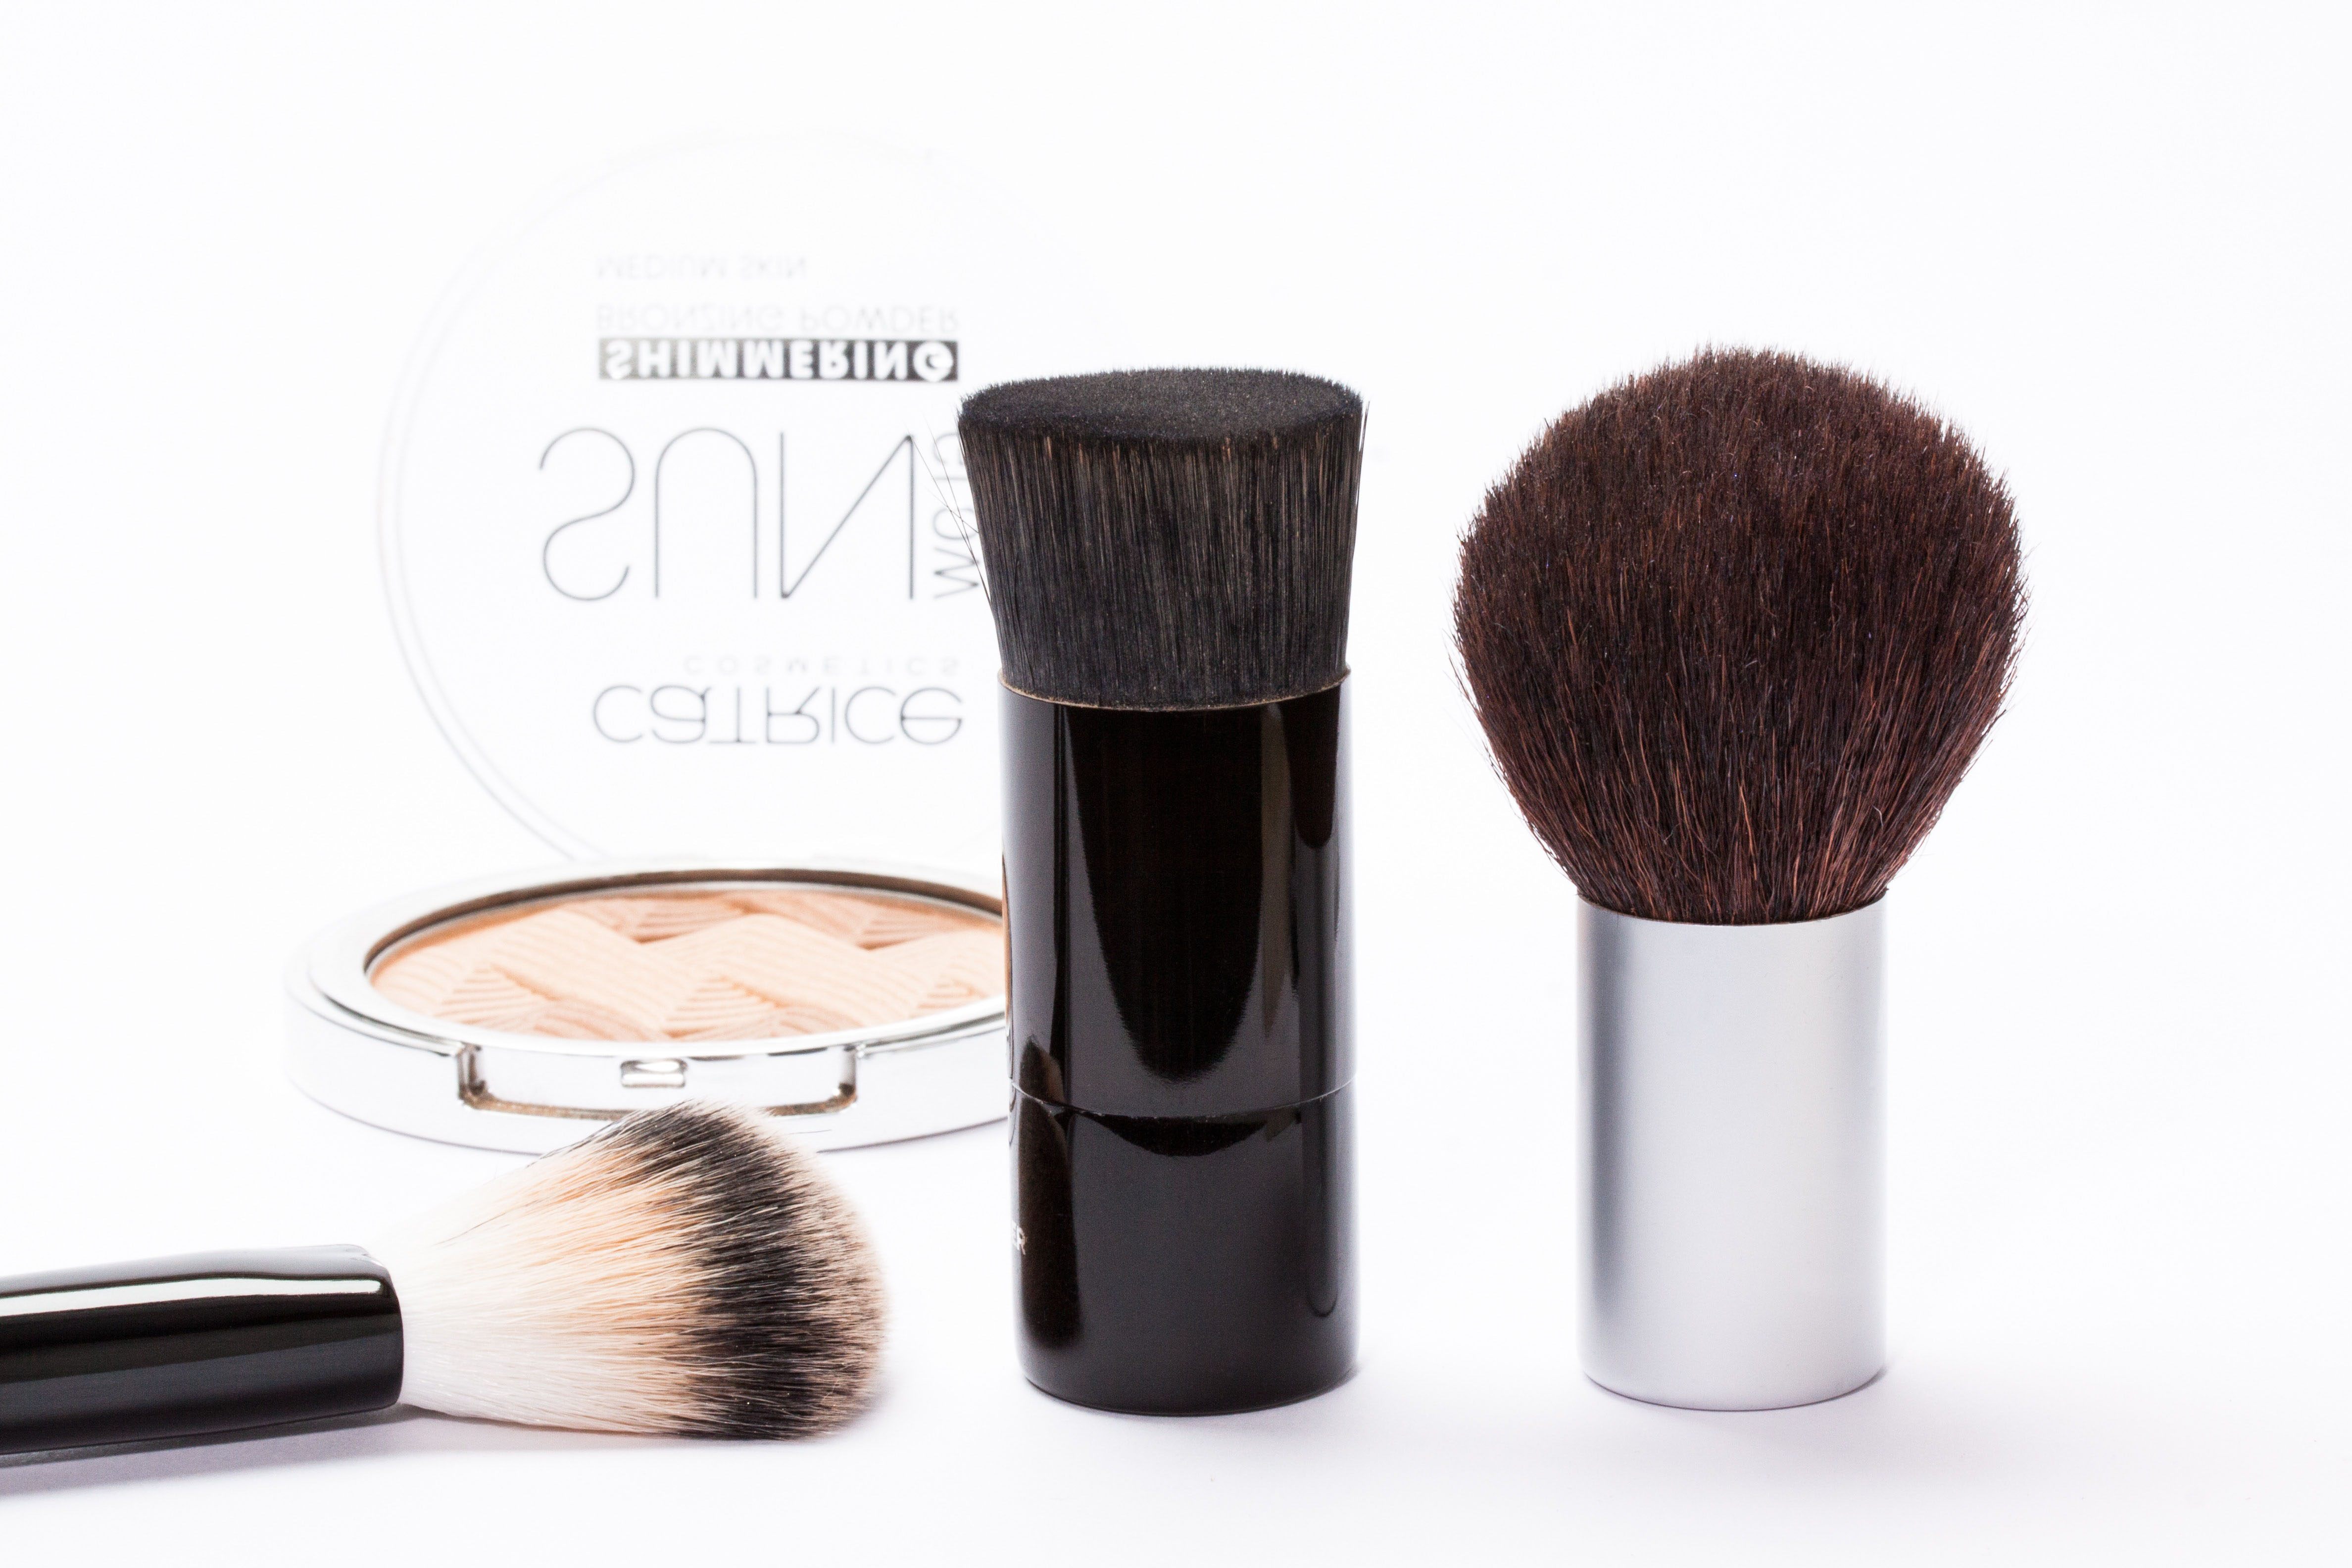 Cosmetics,cream,brush,makeup